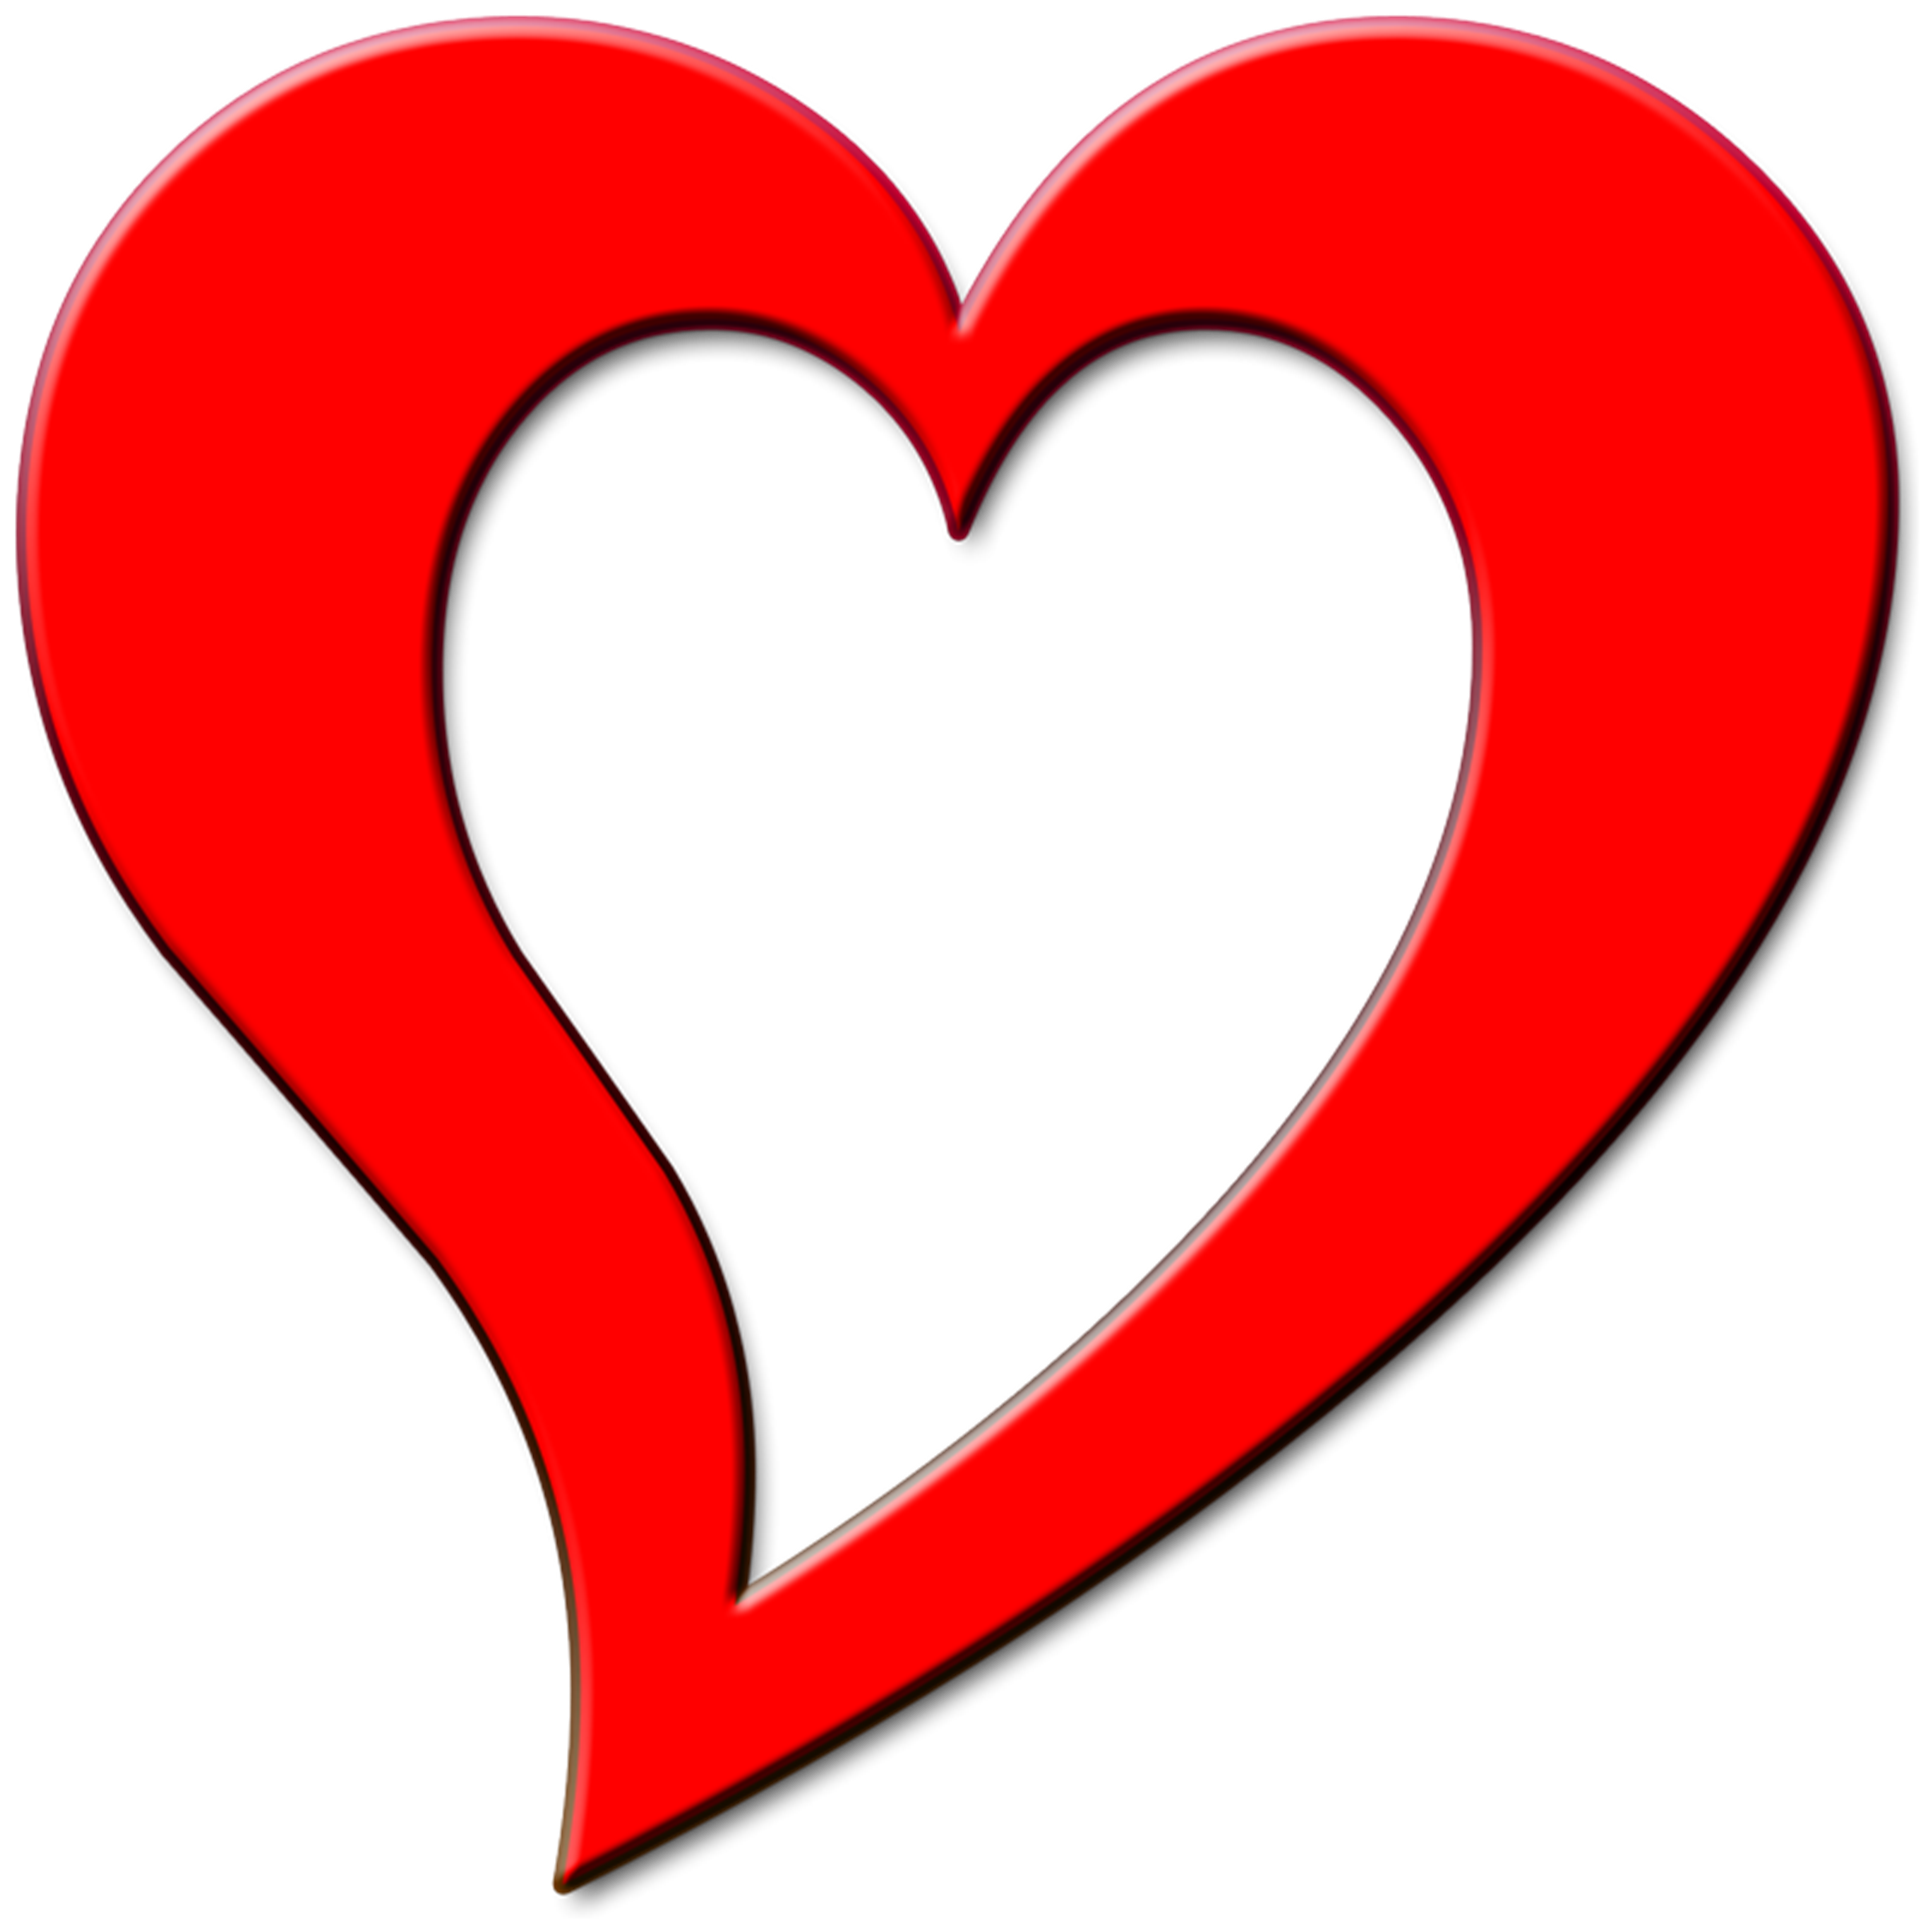 Red heart design clipart free image.